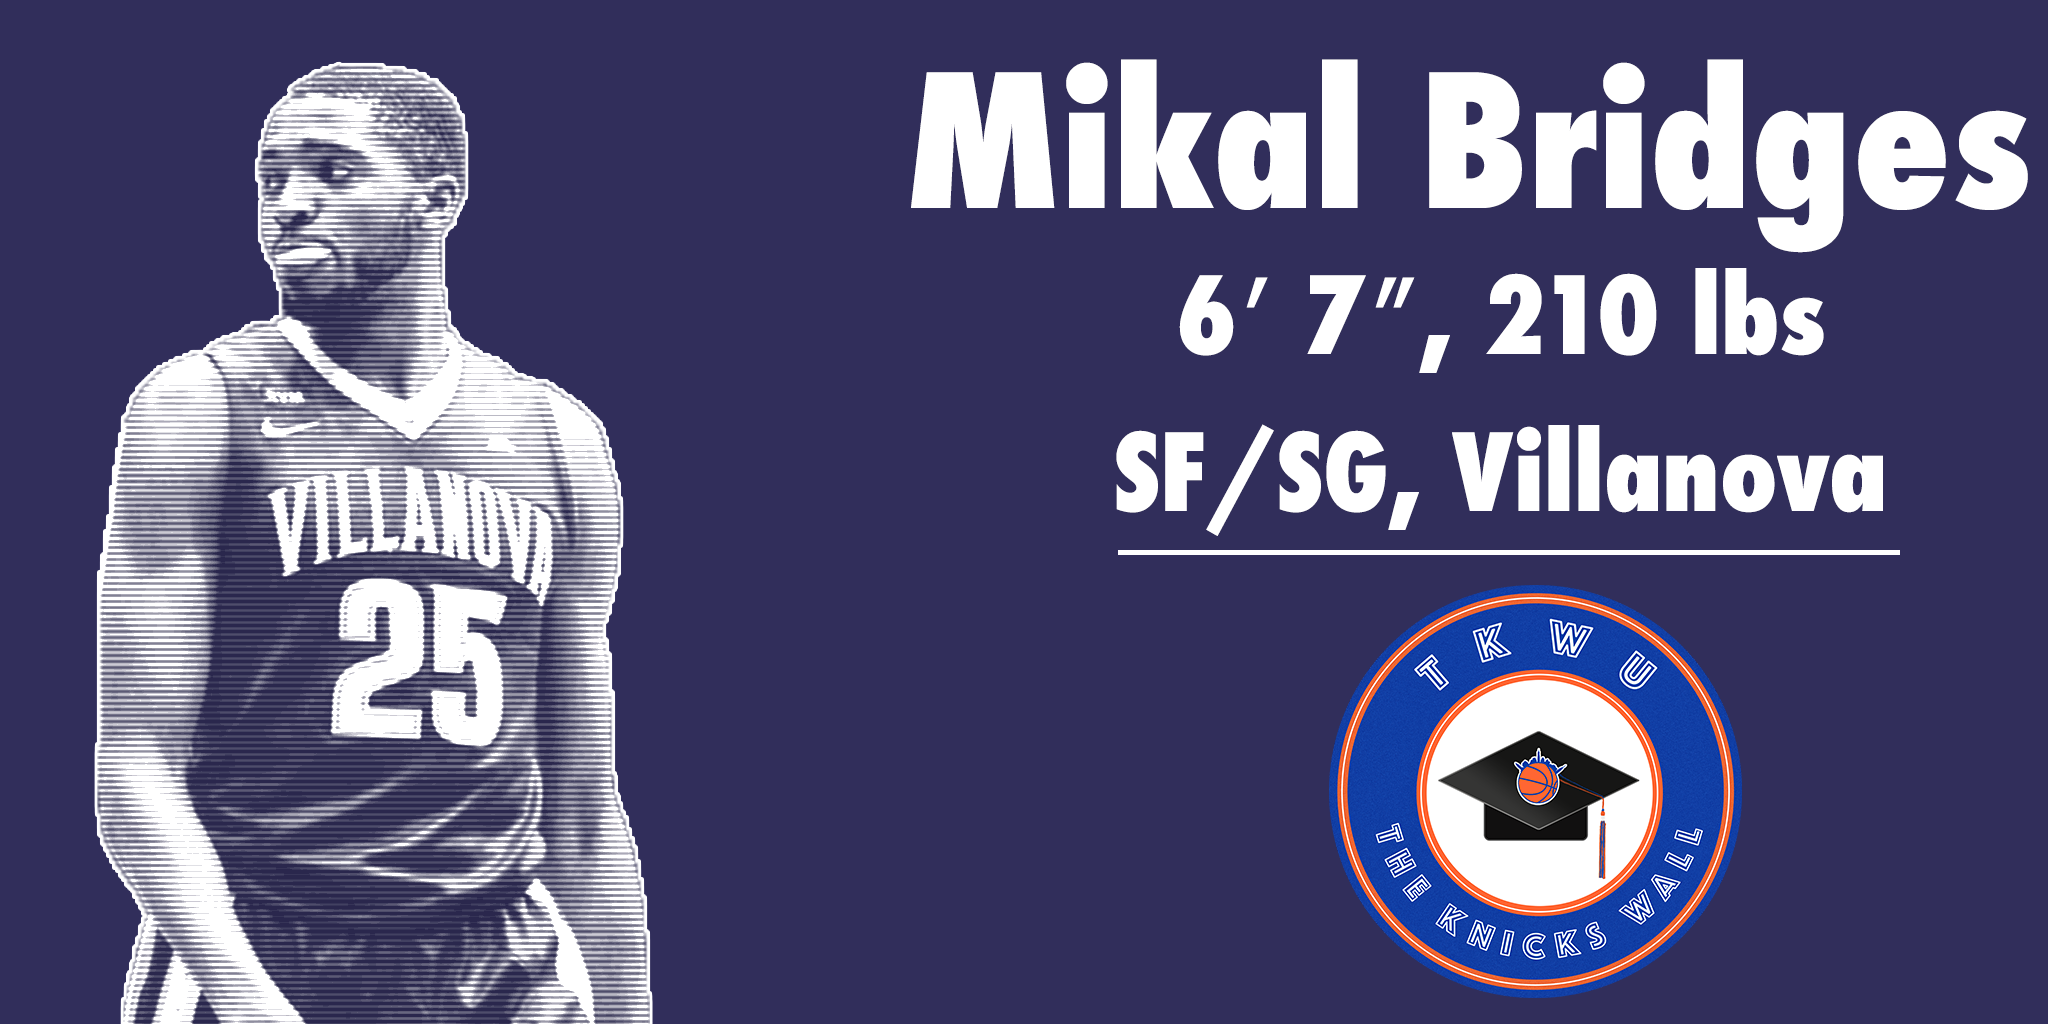 TKW U: Mikal Bridges Knicks Breakdown